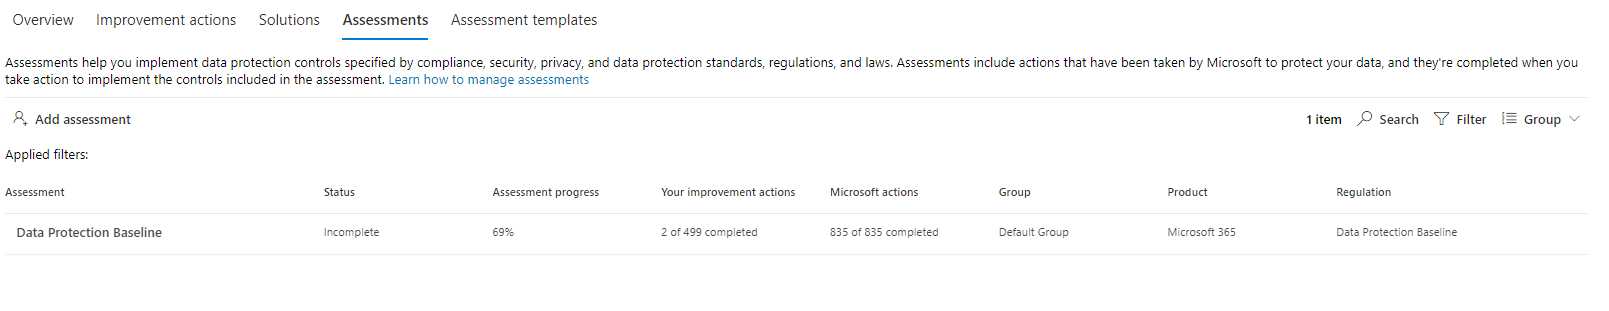 Microsoft 365 Compliance Manager Assessments